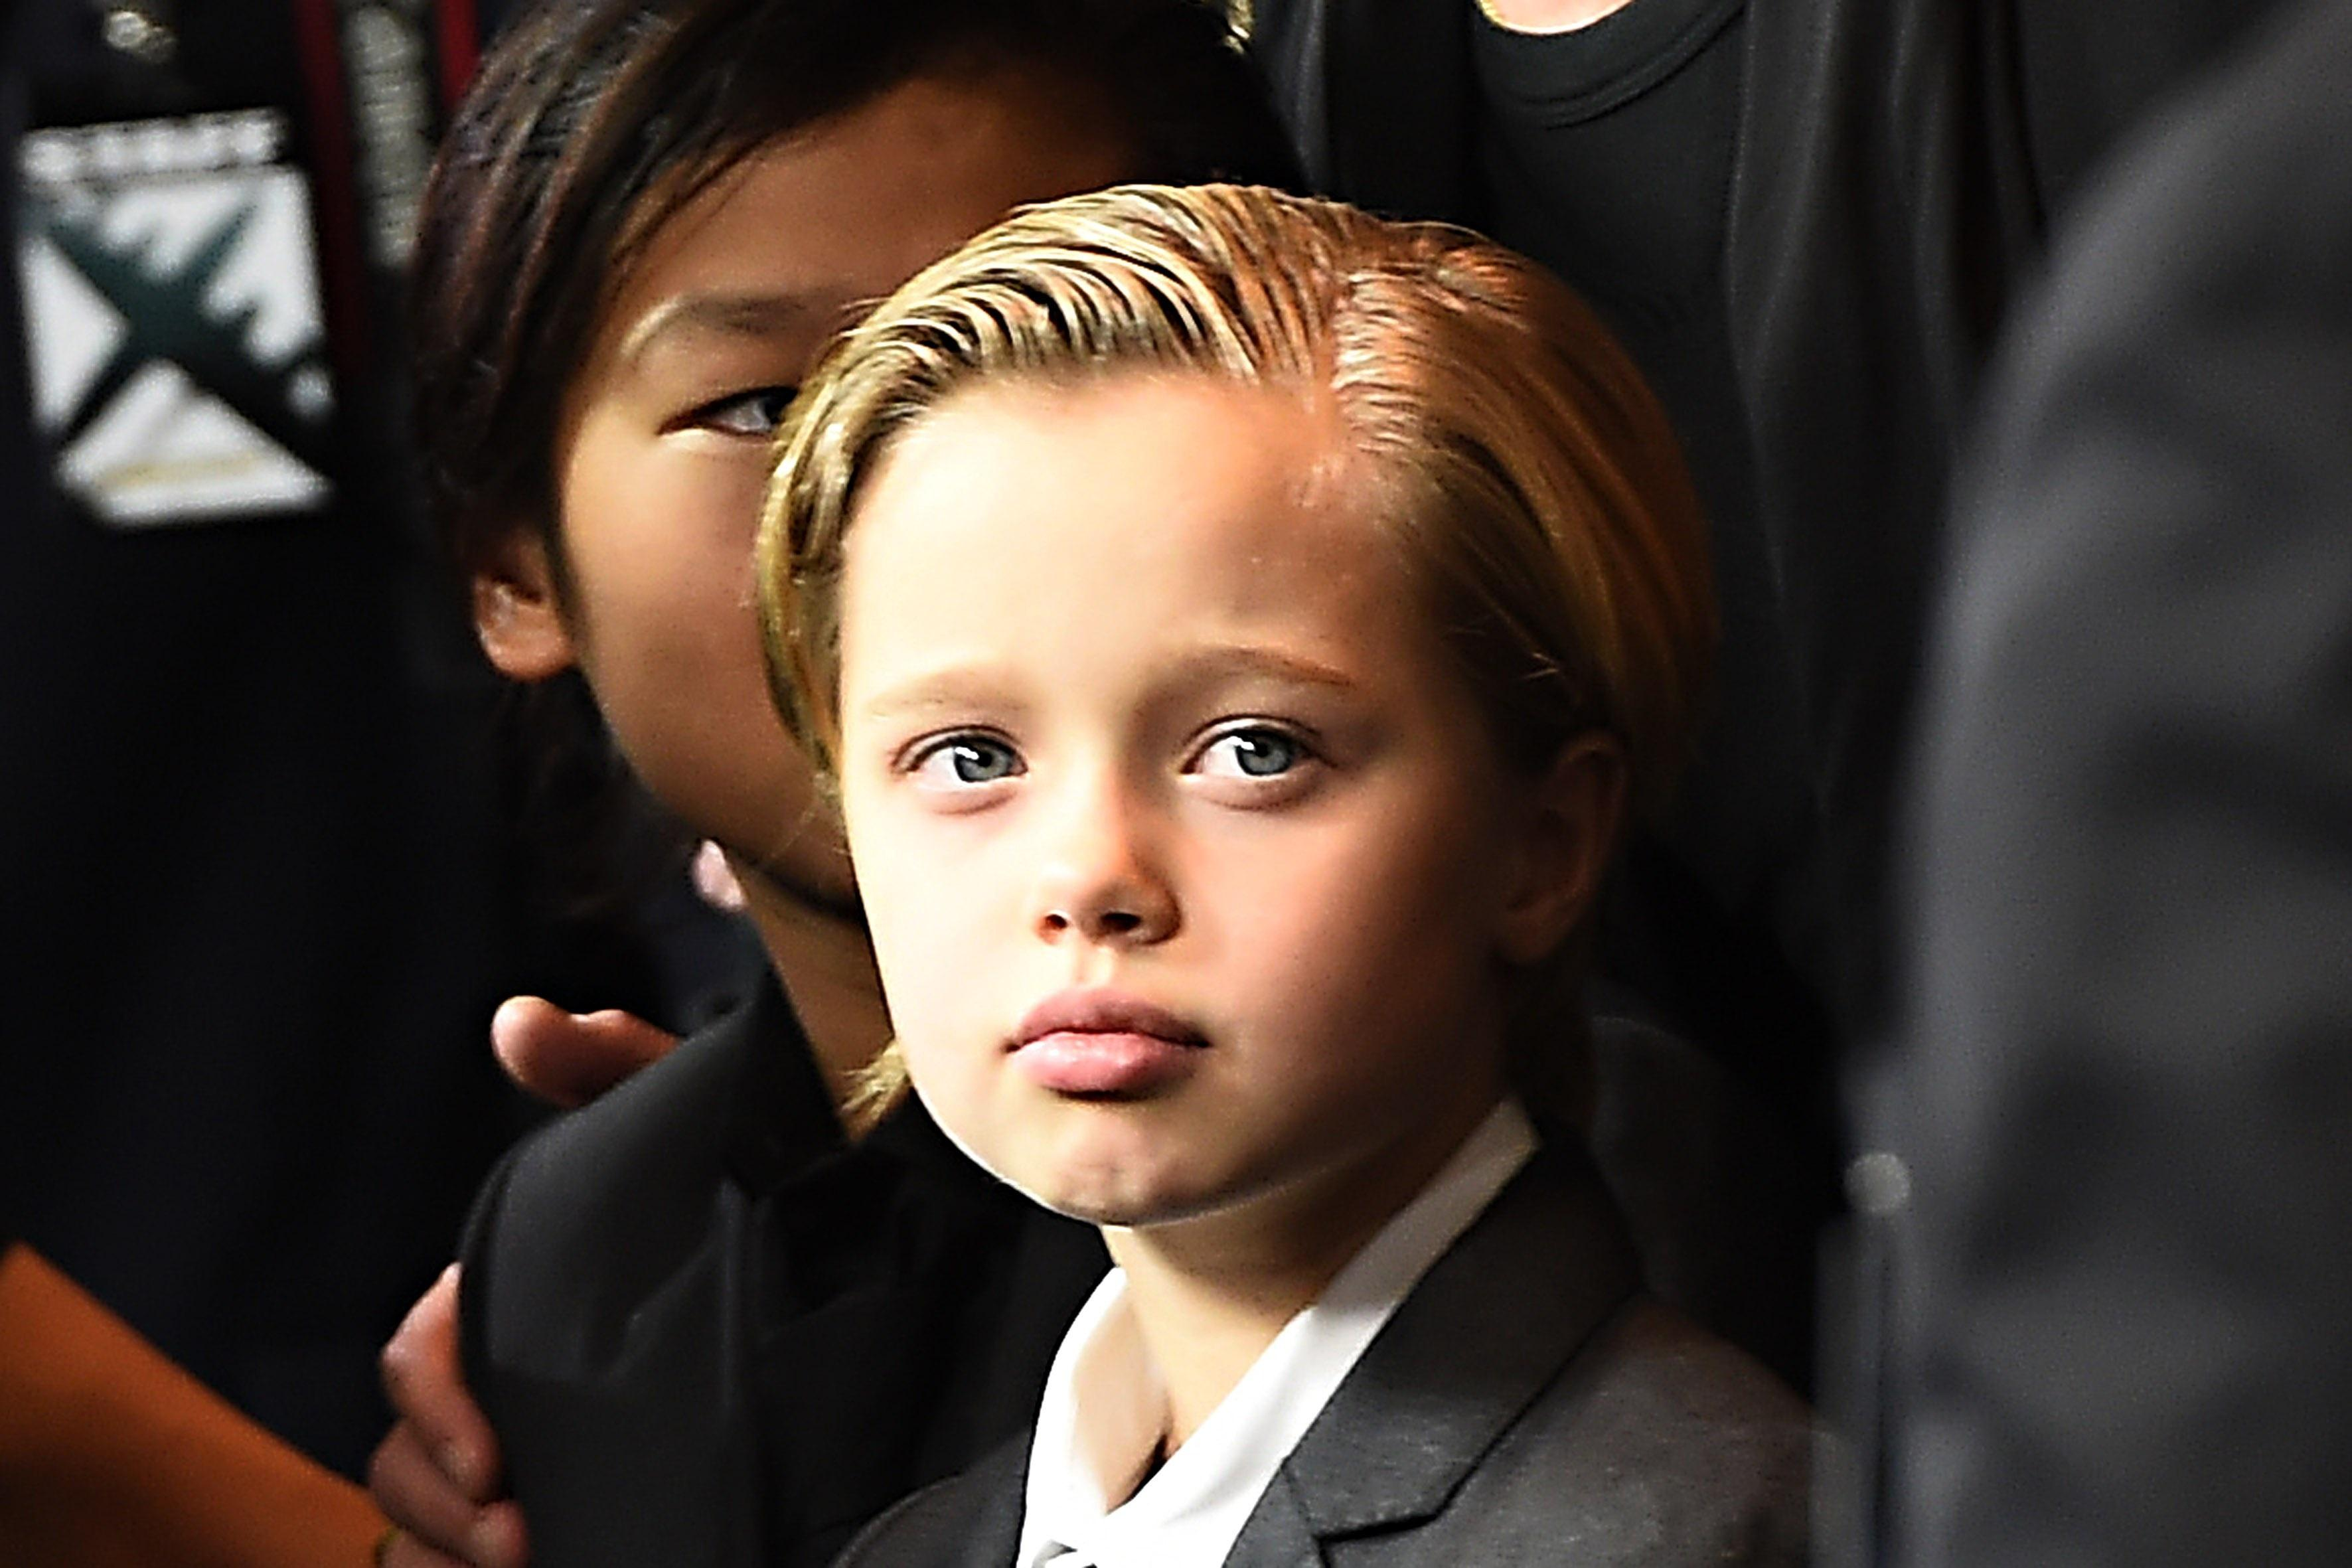 Shiloh Jolie Pitt Pictured With Angelina At Kung Fu Panda 3 Red